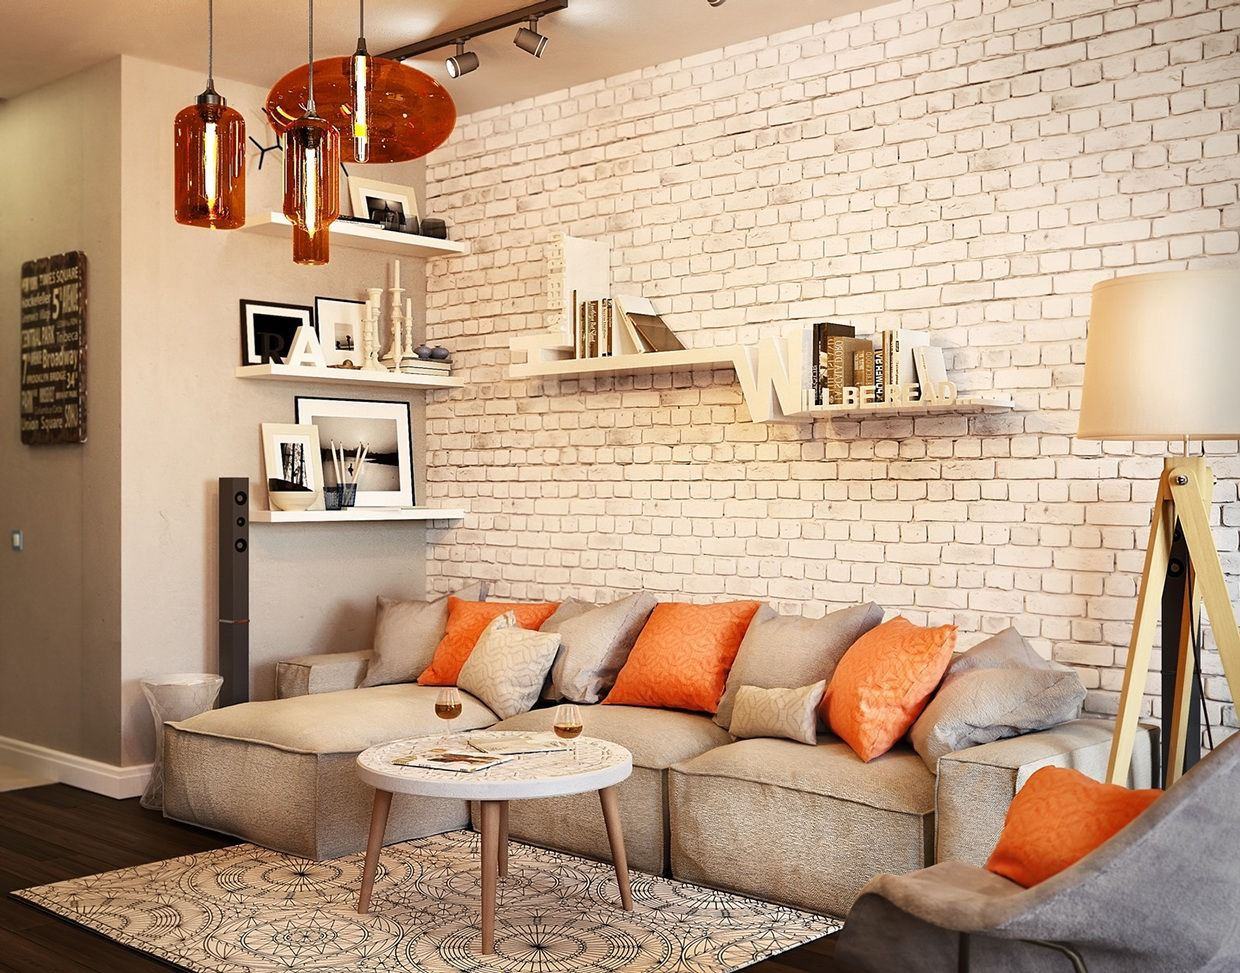 White Brick Brick Wall Living Room White Brick Wall Living Room Brick Living Room